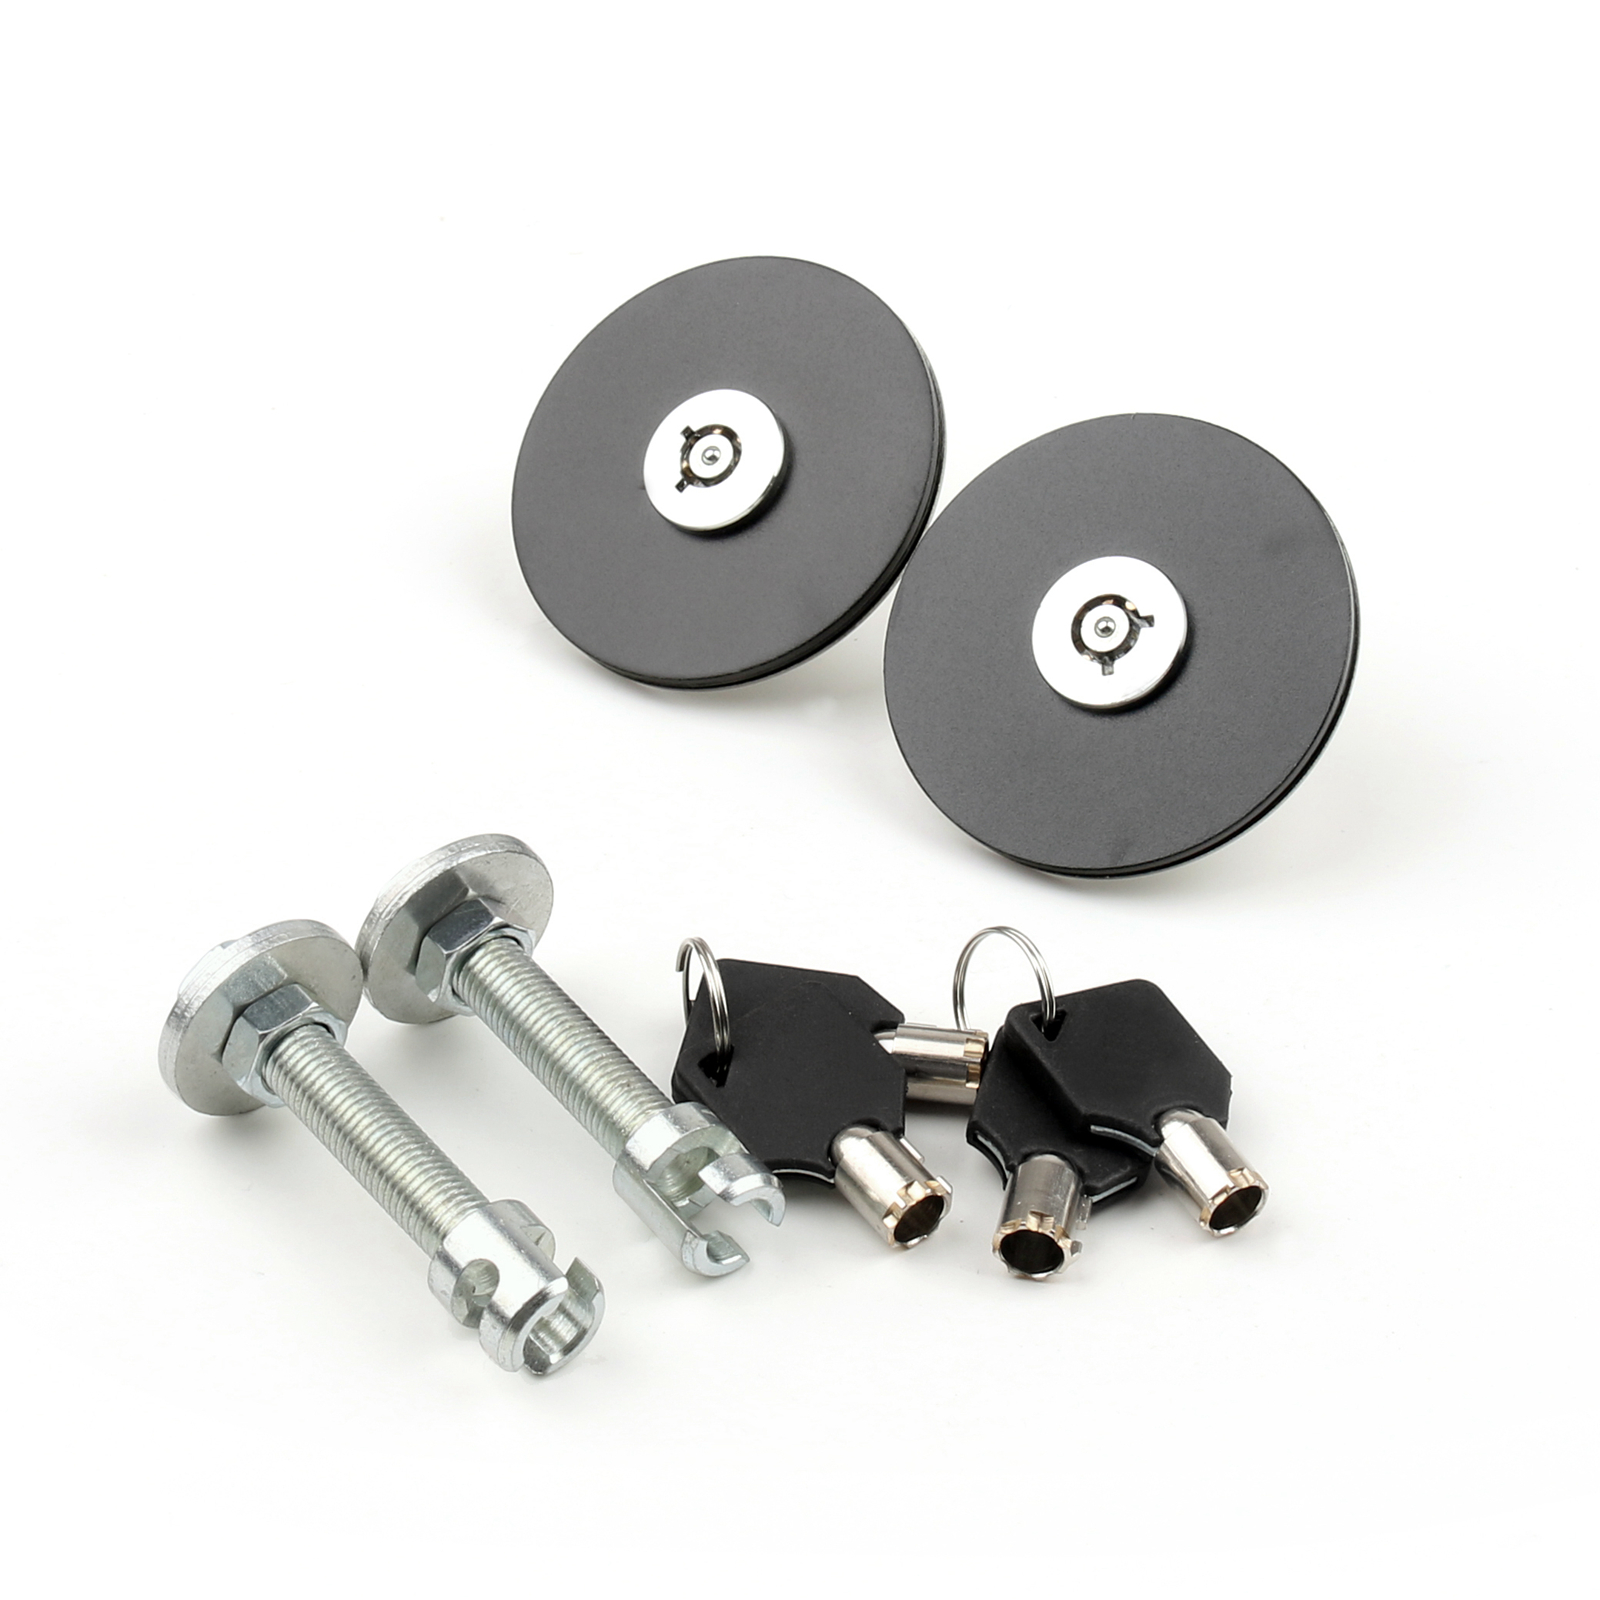 Areyourshop Universal Mount Bonnet Hood Lock Pins Kit <strong>W</strong> Keys For Del Sol Civic Aaaord Black